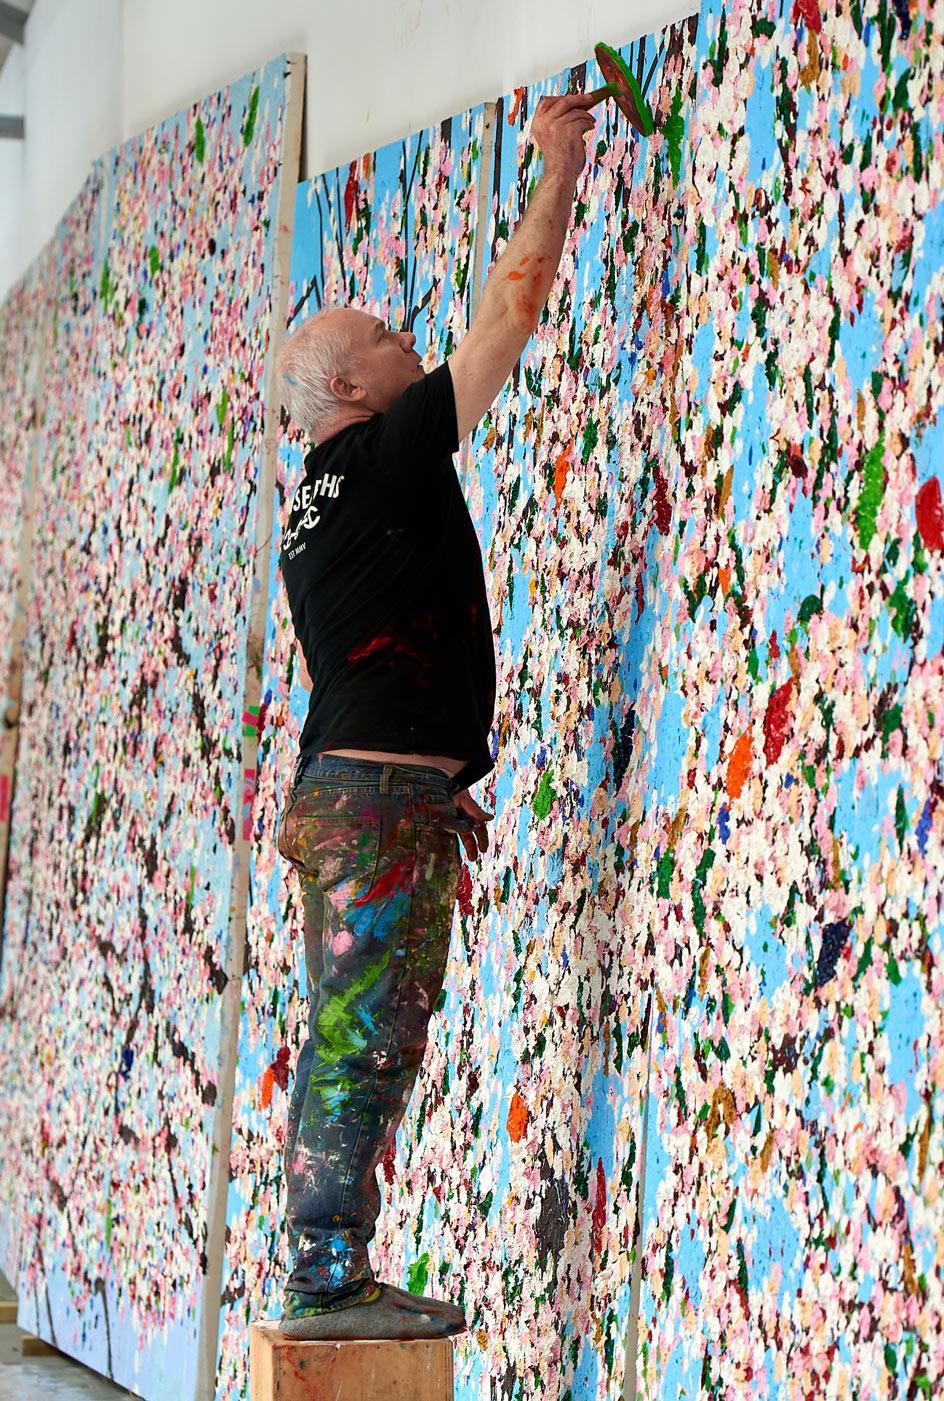 Damien Hirst cherry blossoms in his studio, 2019© Damien Hirst and Science Ltd.All rights reserved, DACS 2021